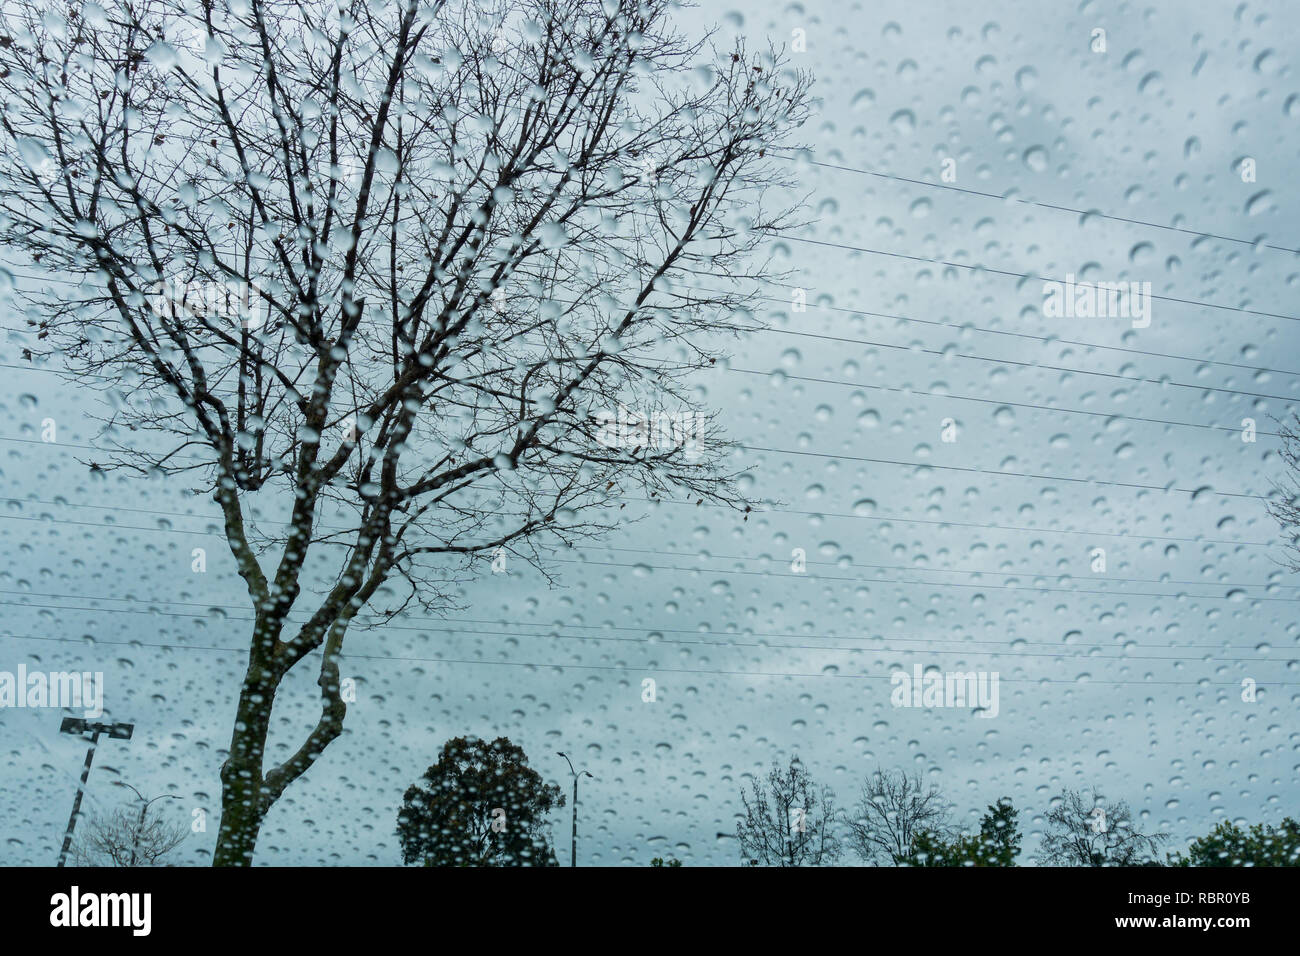 Blurred drops of rain on the window; focus on the tree in the background - Stock Image